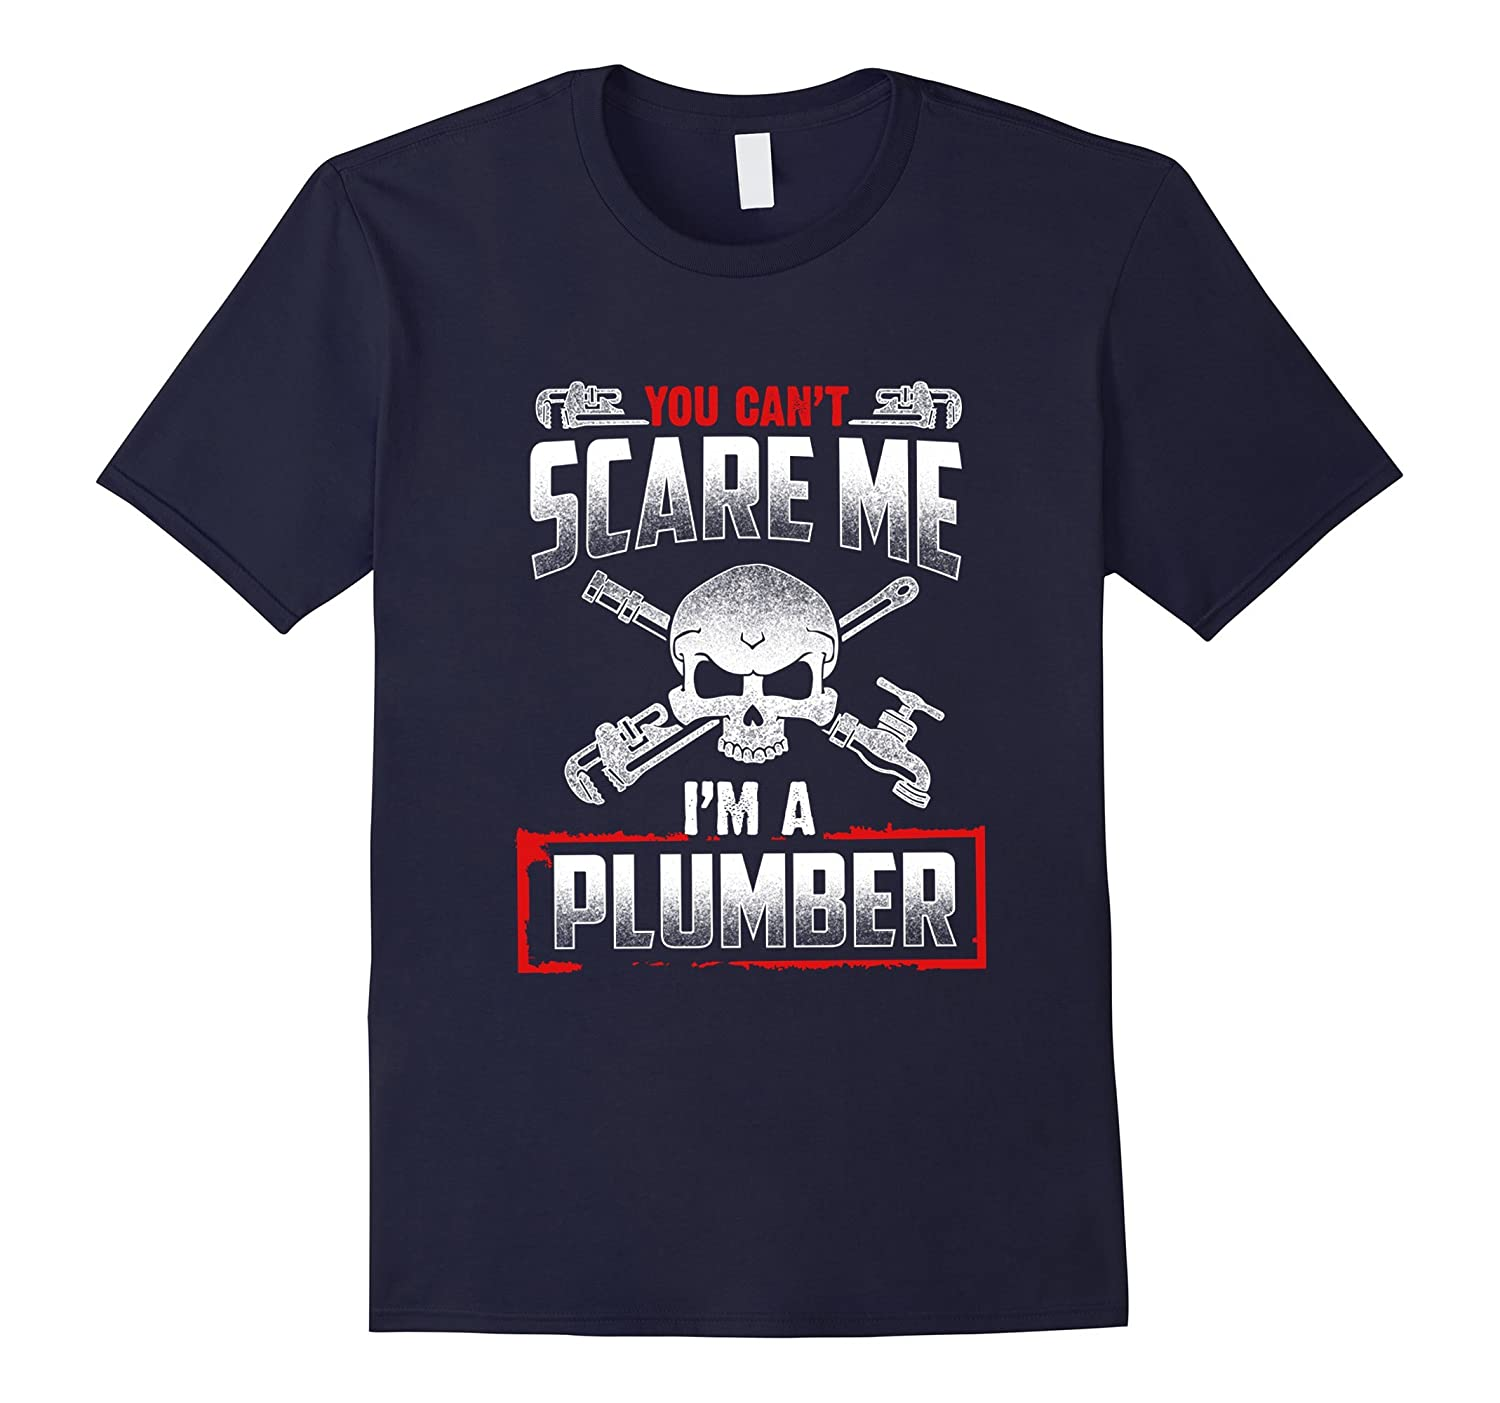 You can't scare me, I'm a plumber ,funny T- shirt-TH